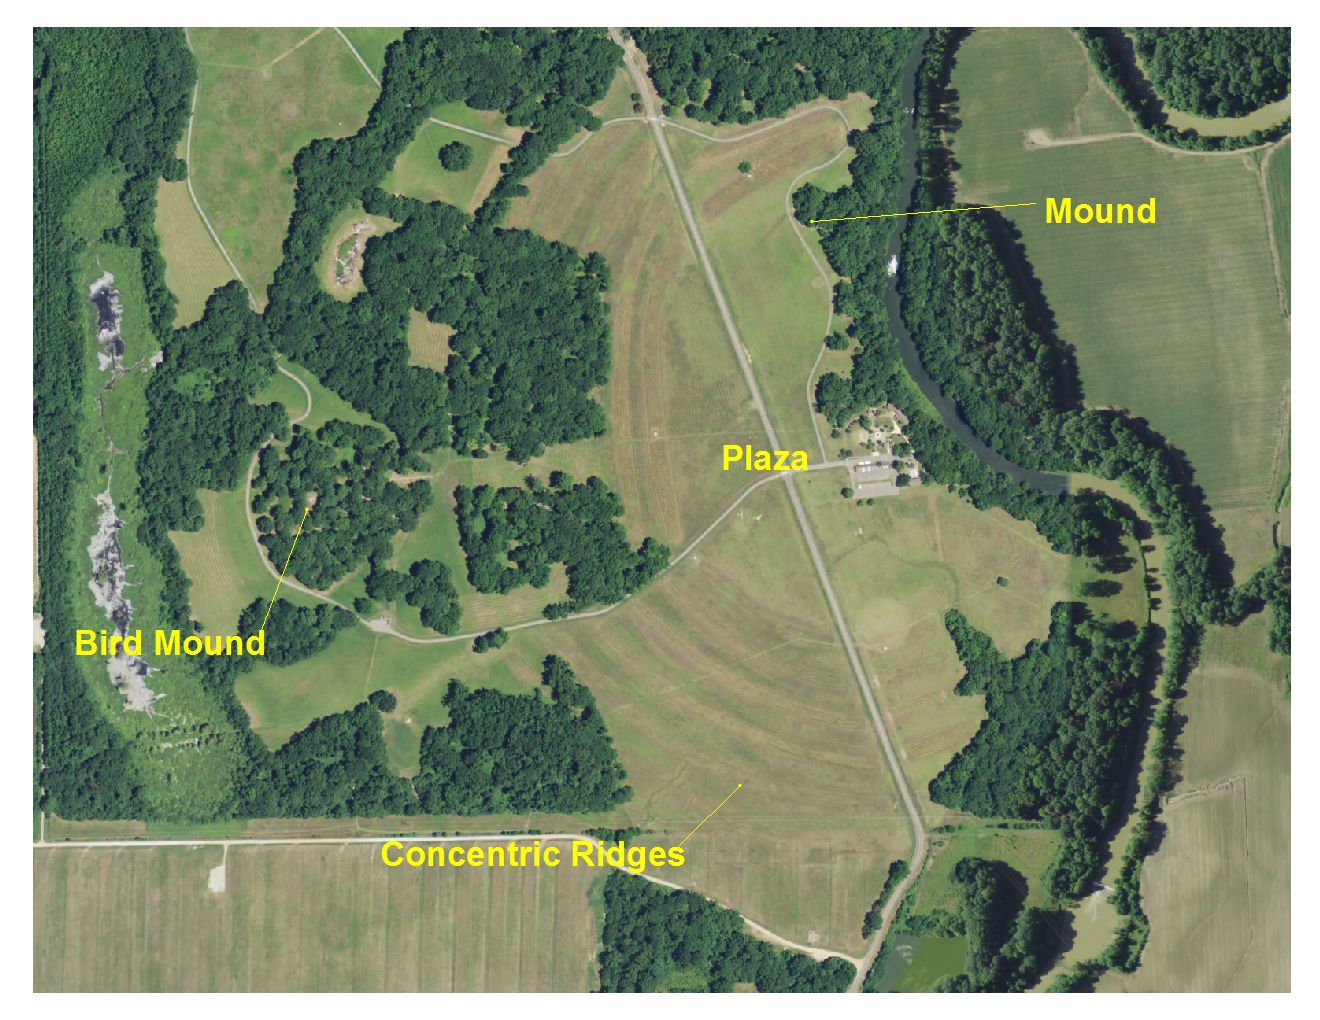 Aerial Photographs of Native American Earthworks in Louisiana